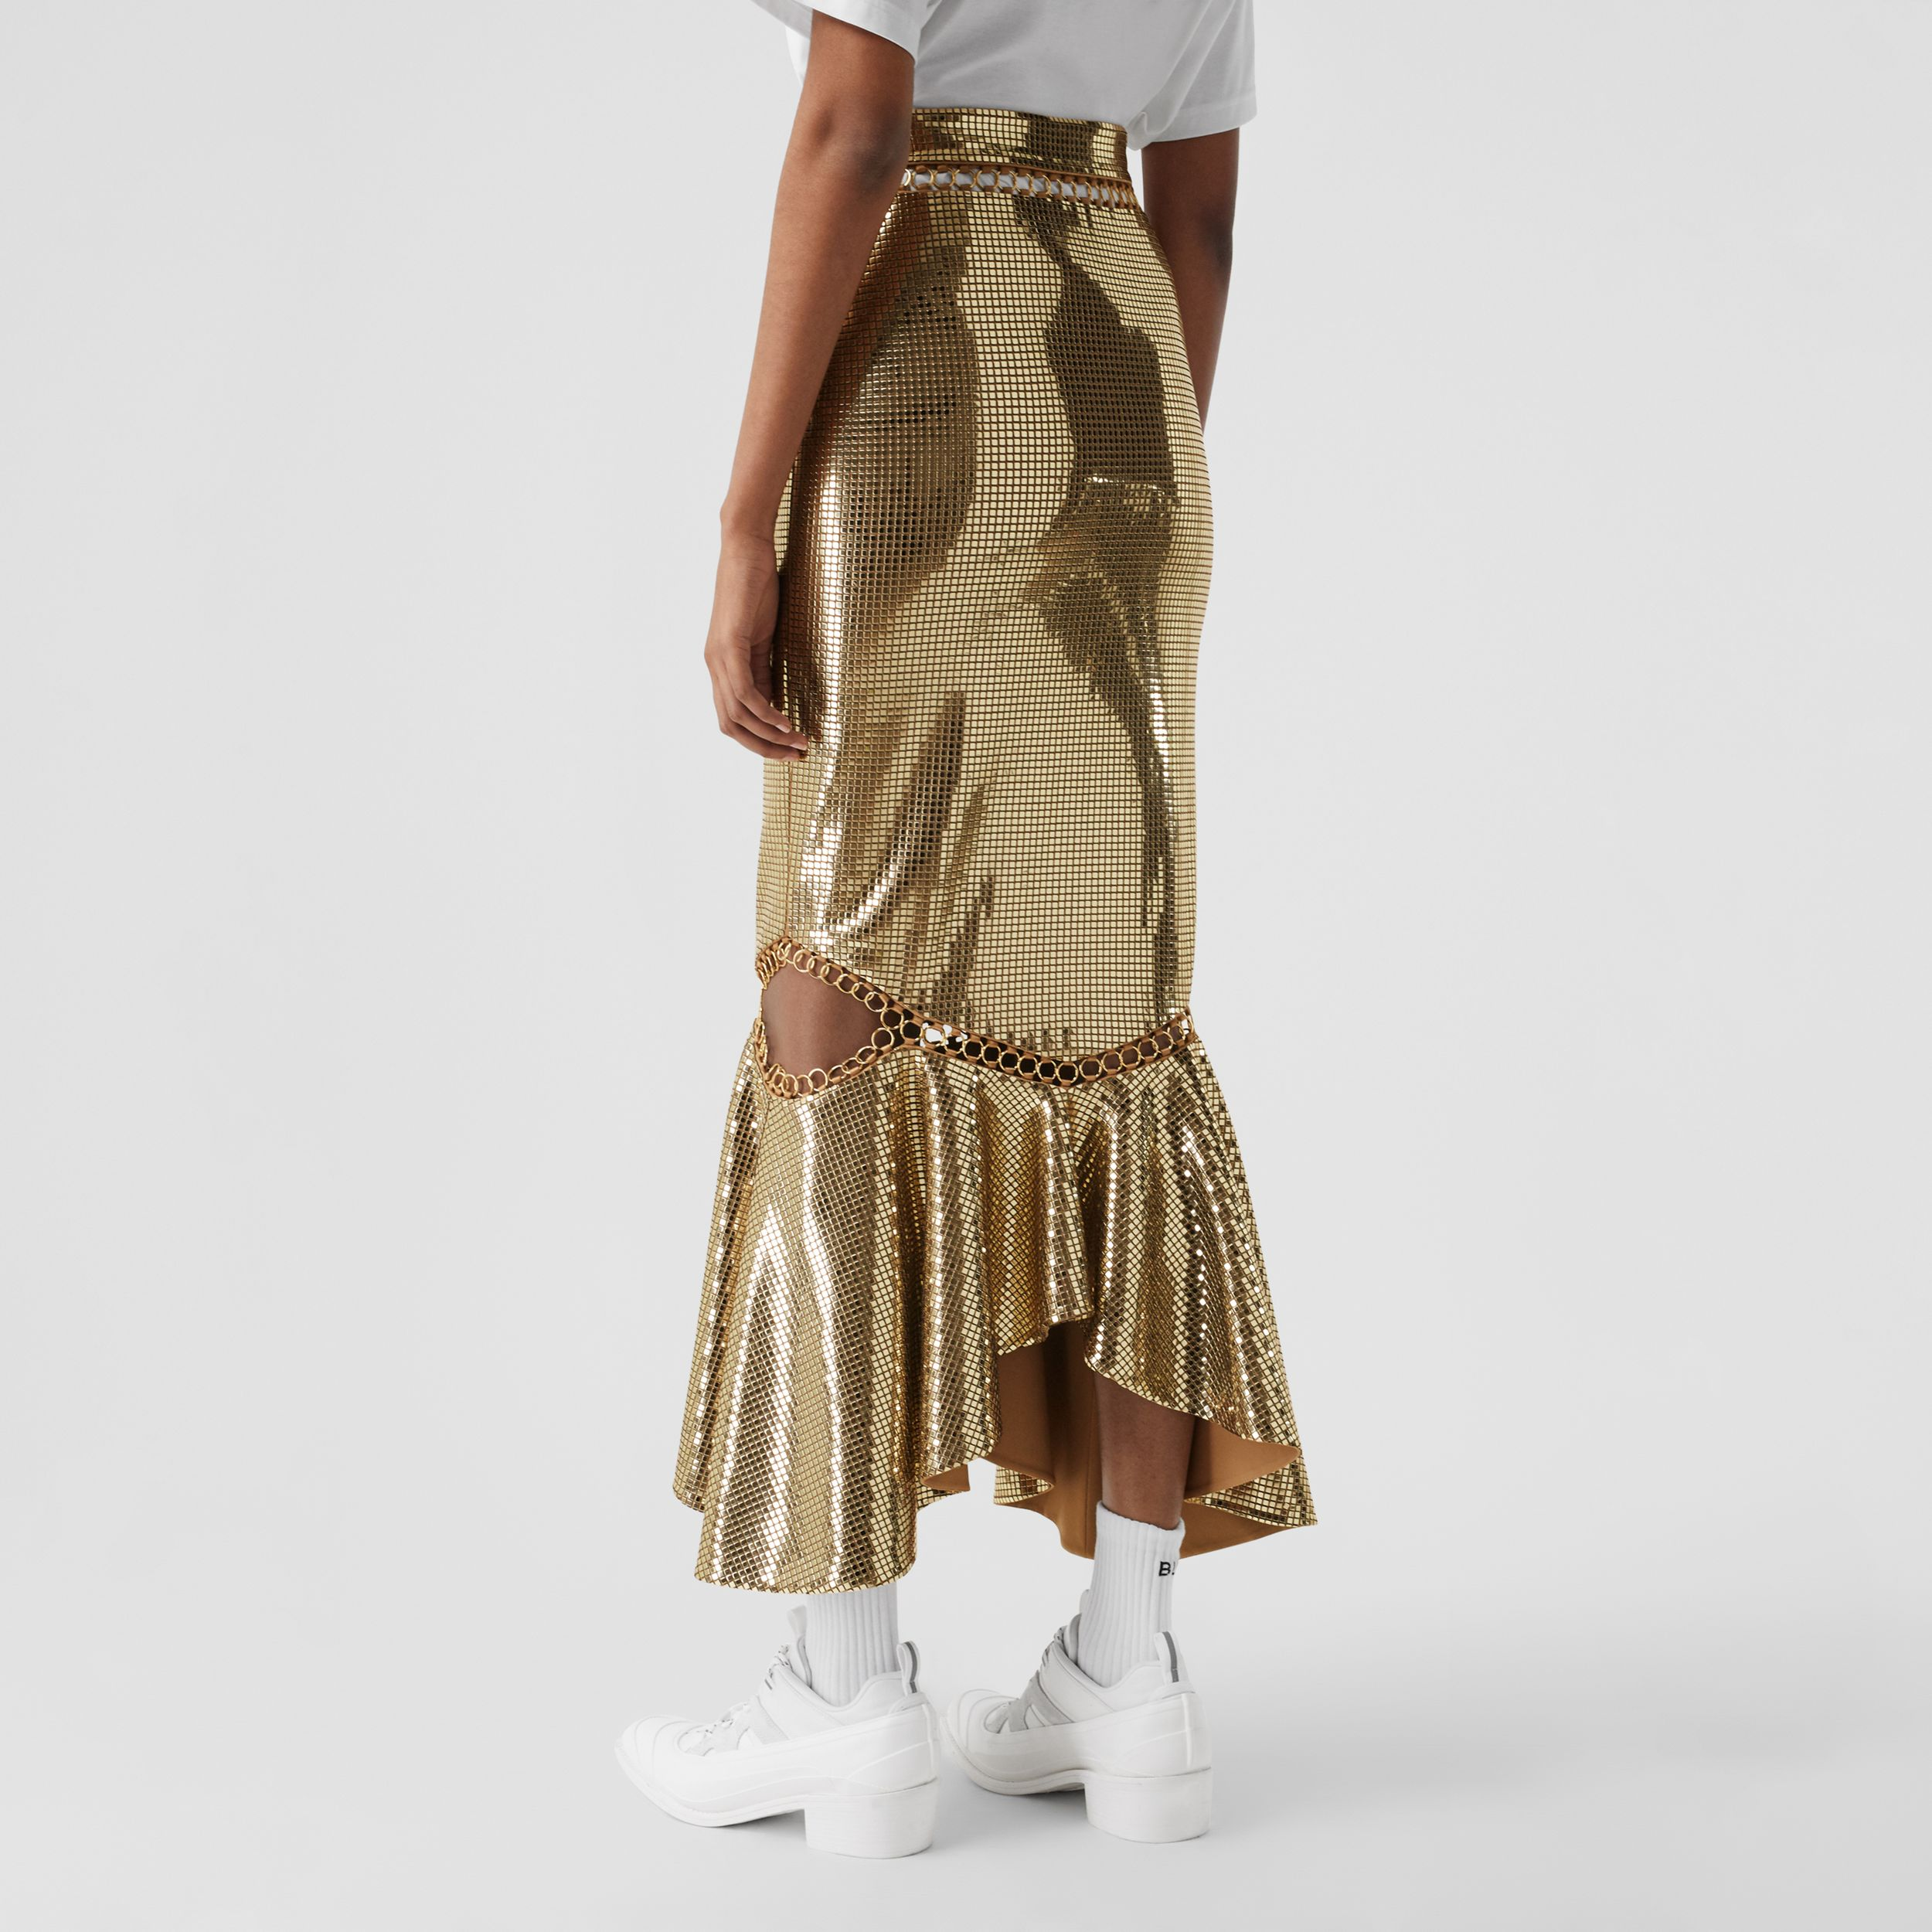 Ring-pierced Mirrored Jersey Skirt in Dark Biscuit - Women | Burberry - 3